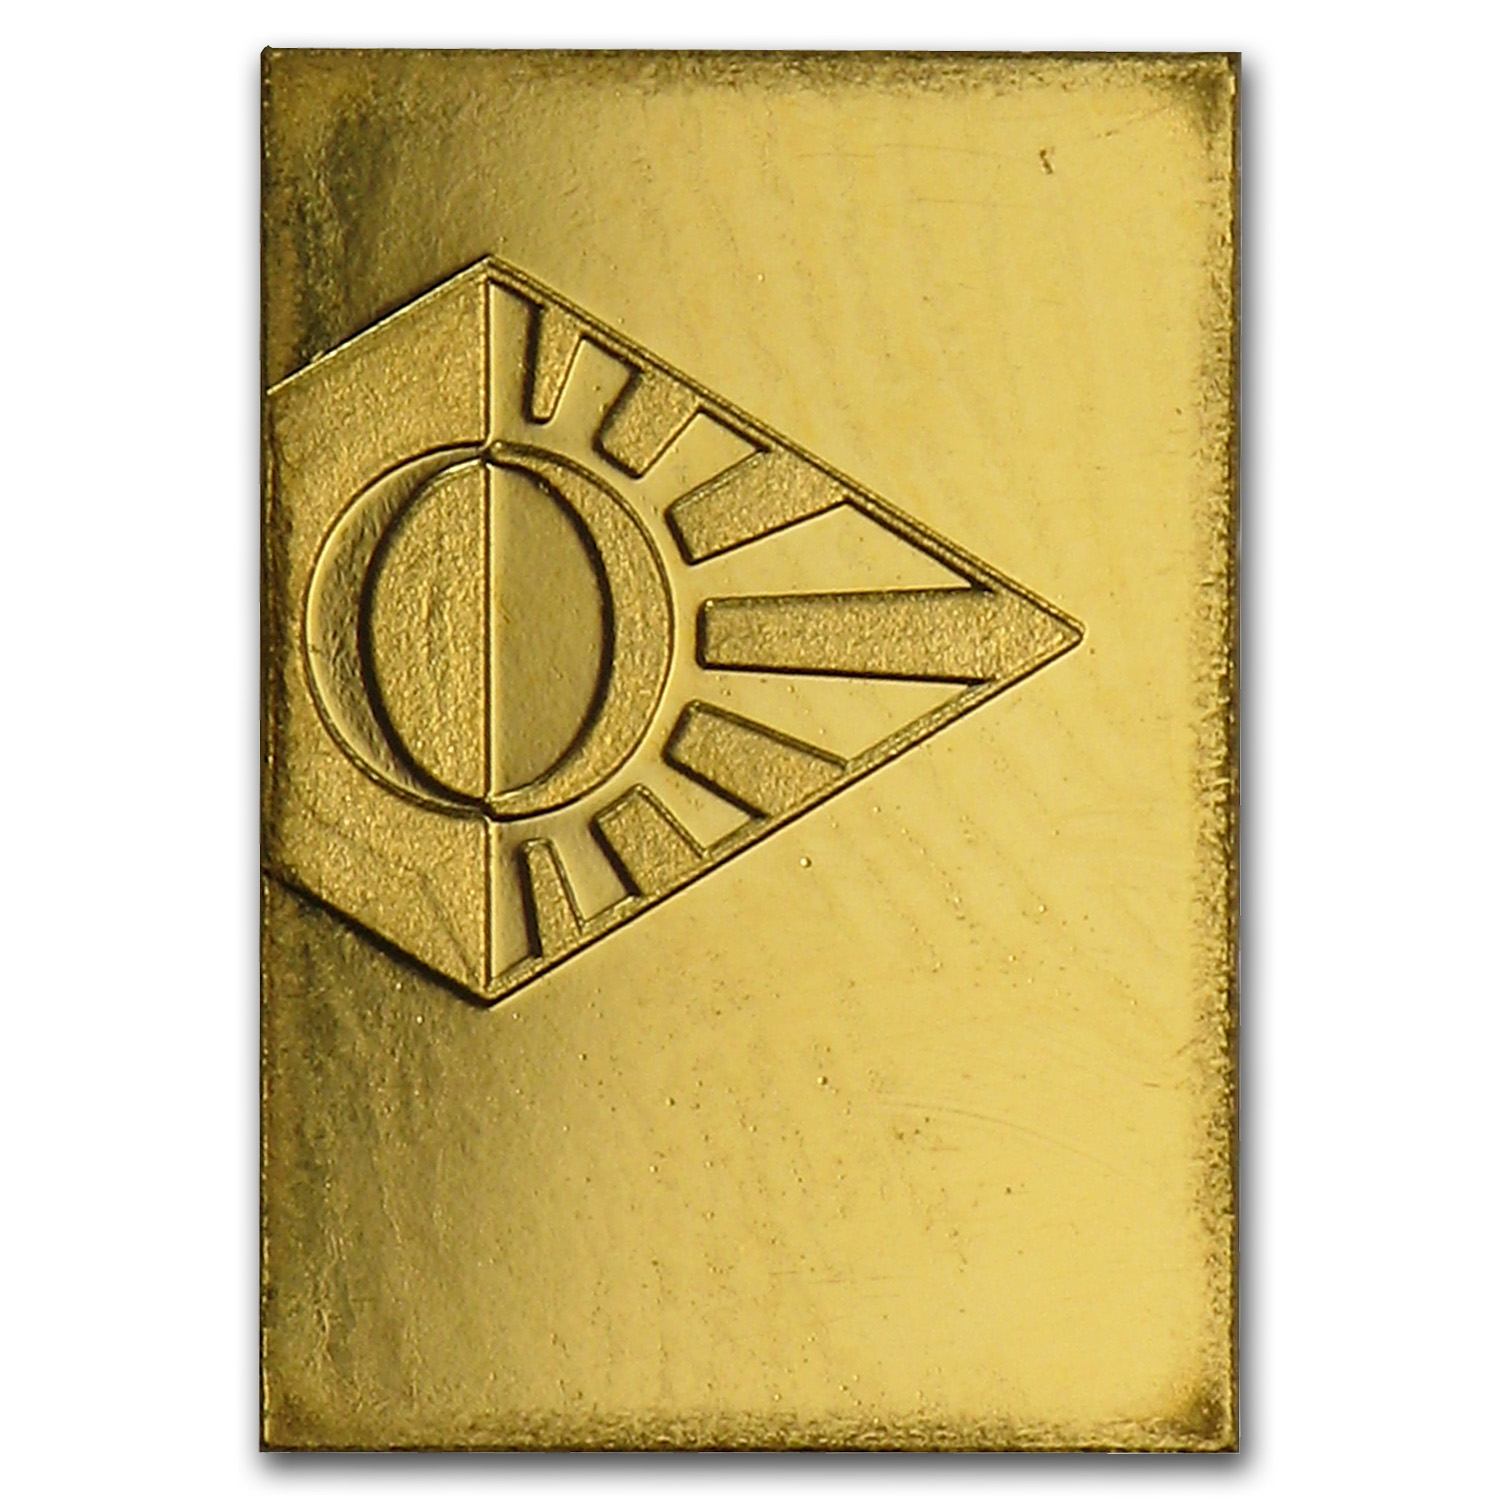 1 gram Gold Bars - Degussa (No Assay)